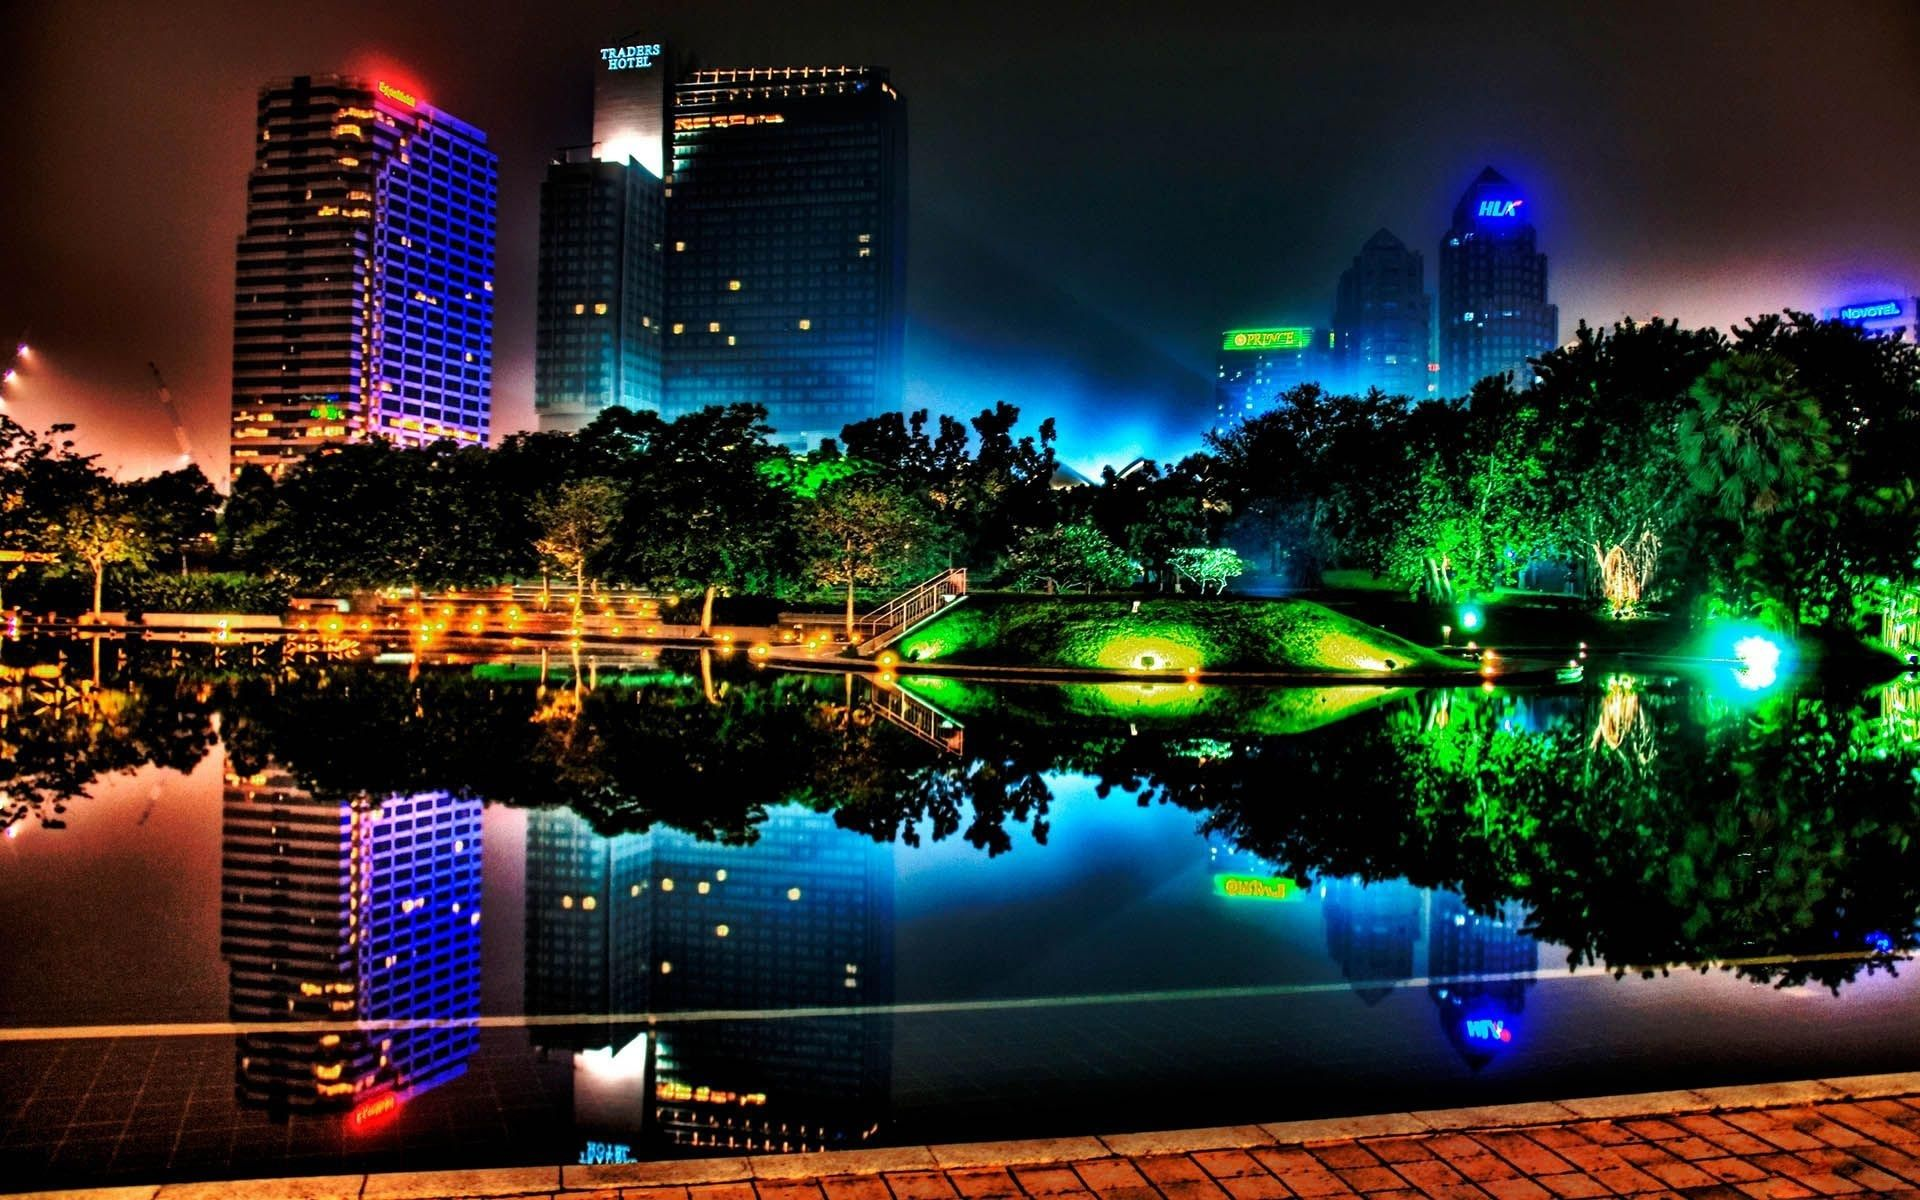 Cool Wallpaper Night Colorful - 47dab28758e568ded2d6bab9f5893481  You Should Have.jpg